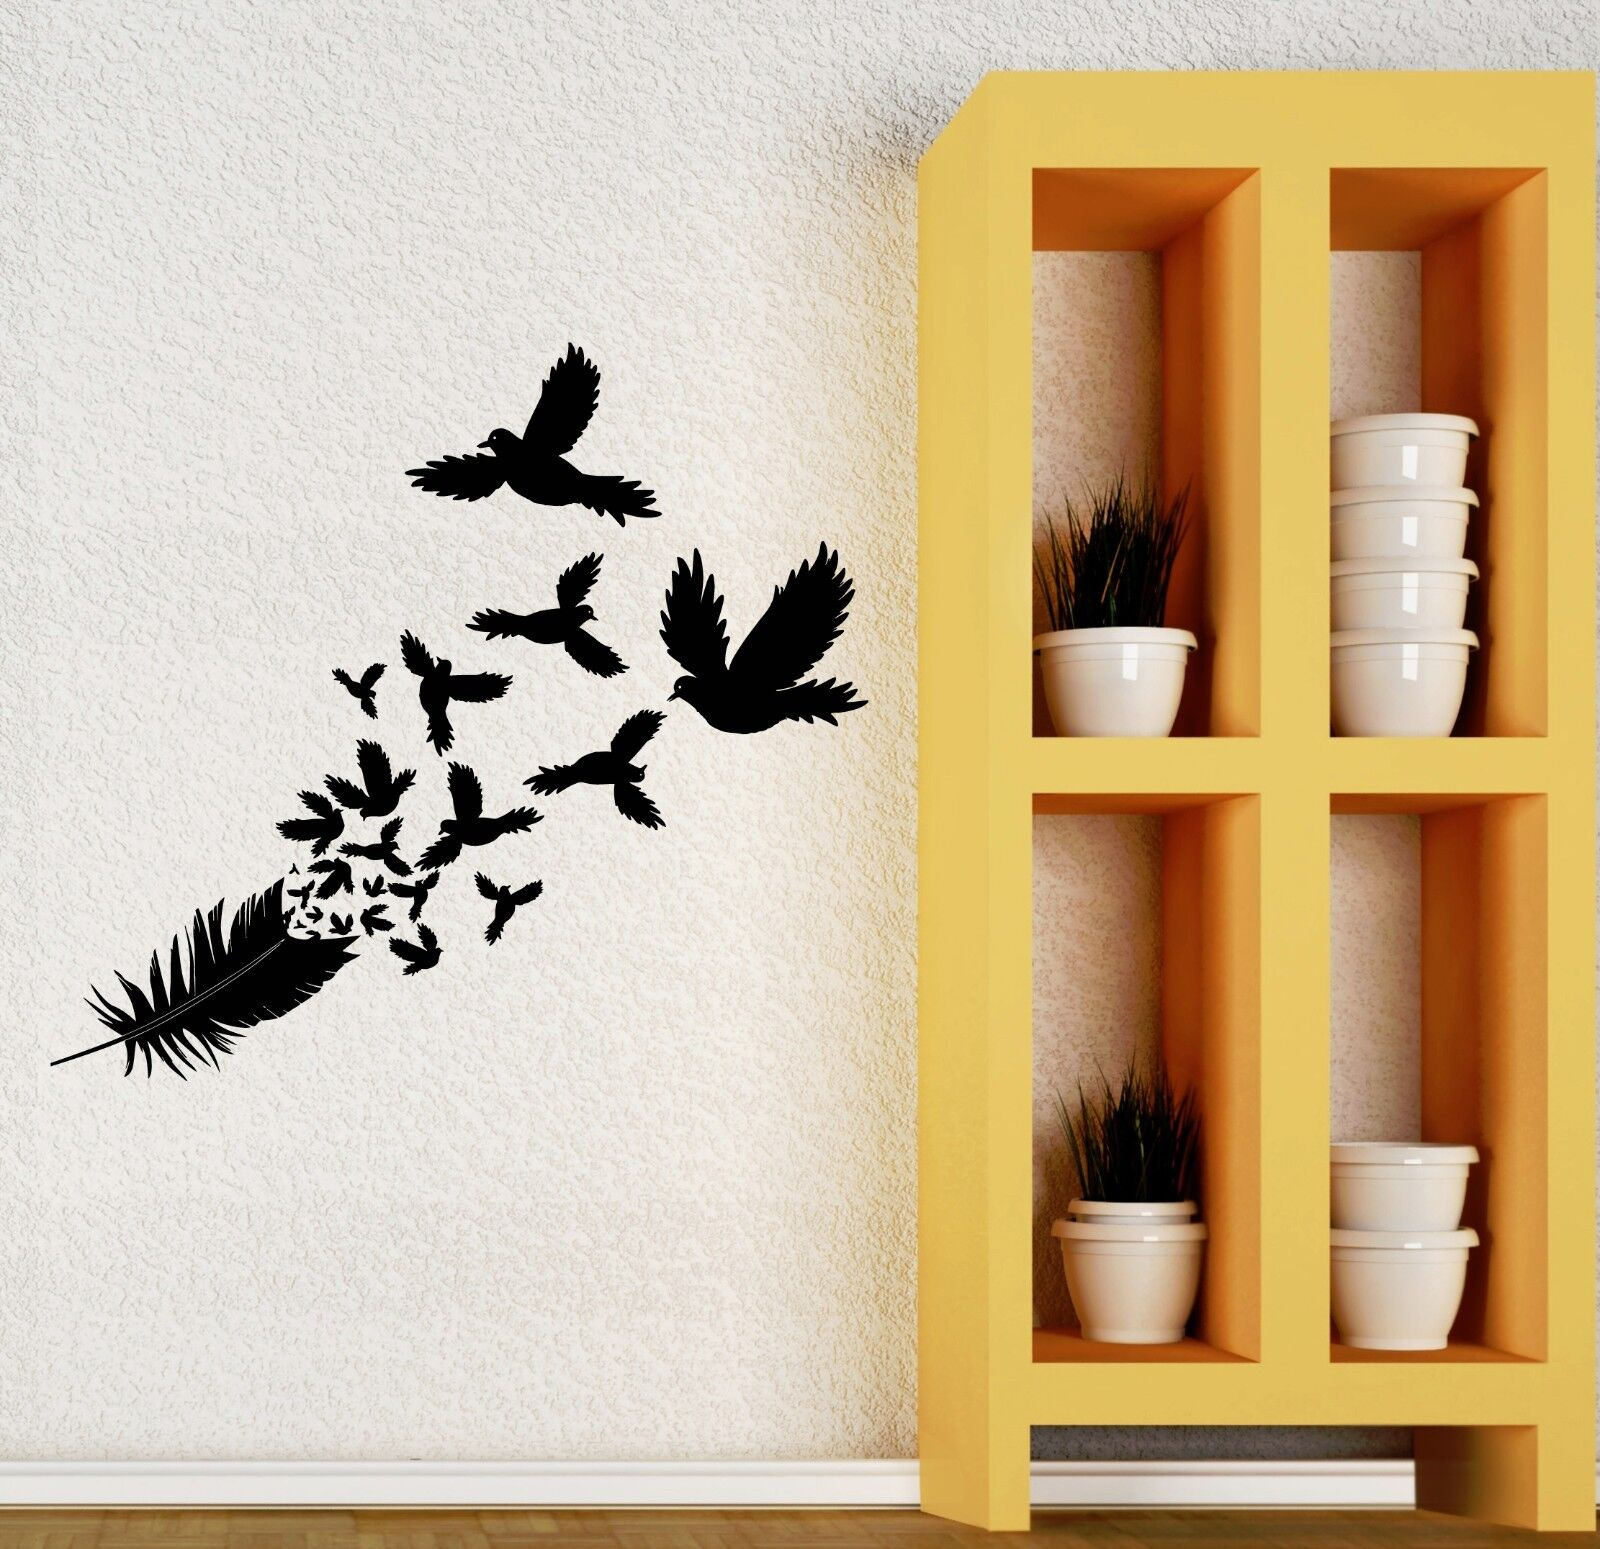 Wand Decal Birds Feather Schön Room Decor Kunst Vinyl Mural (ig2713)